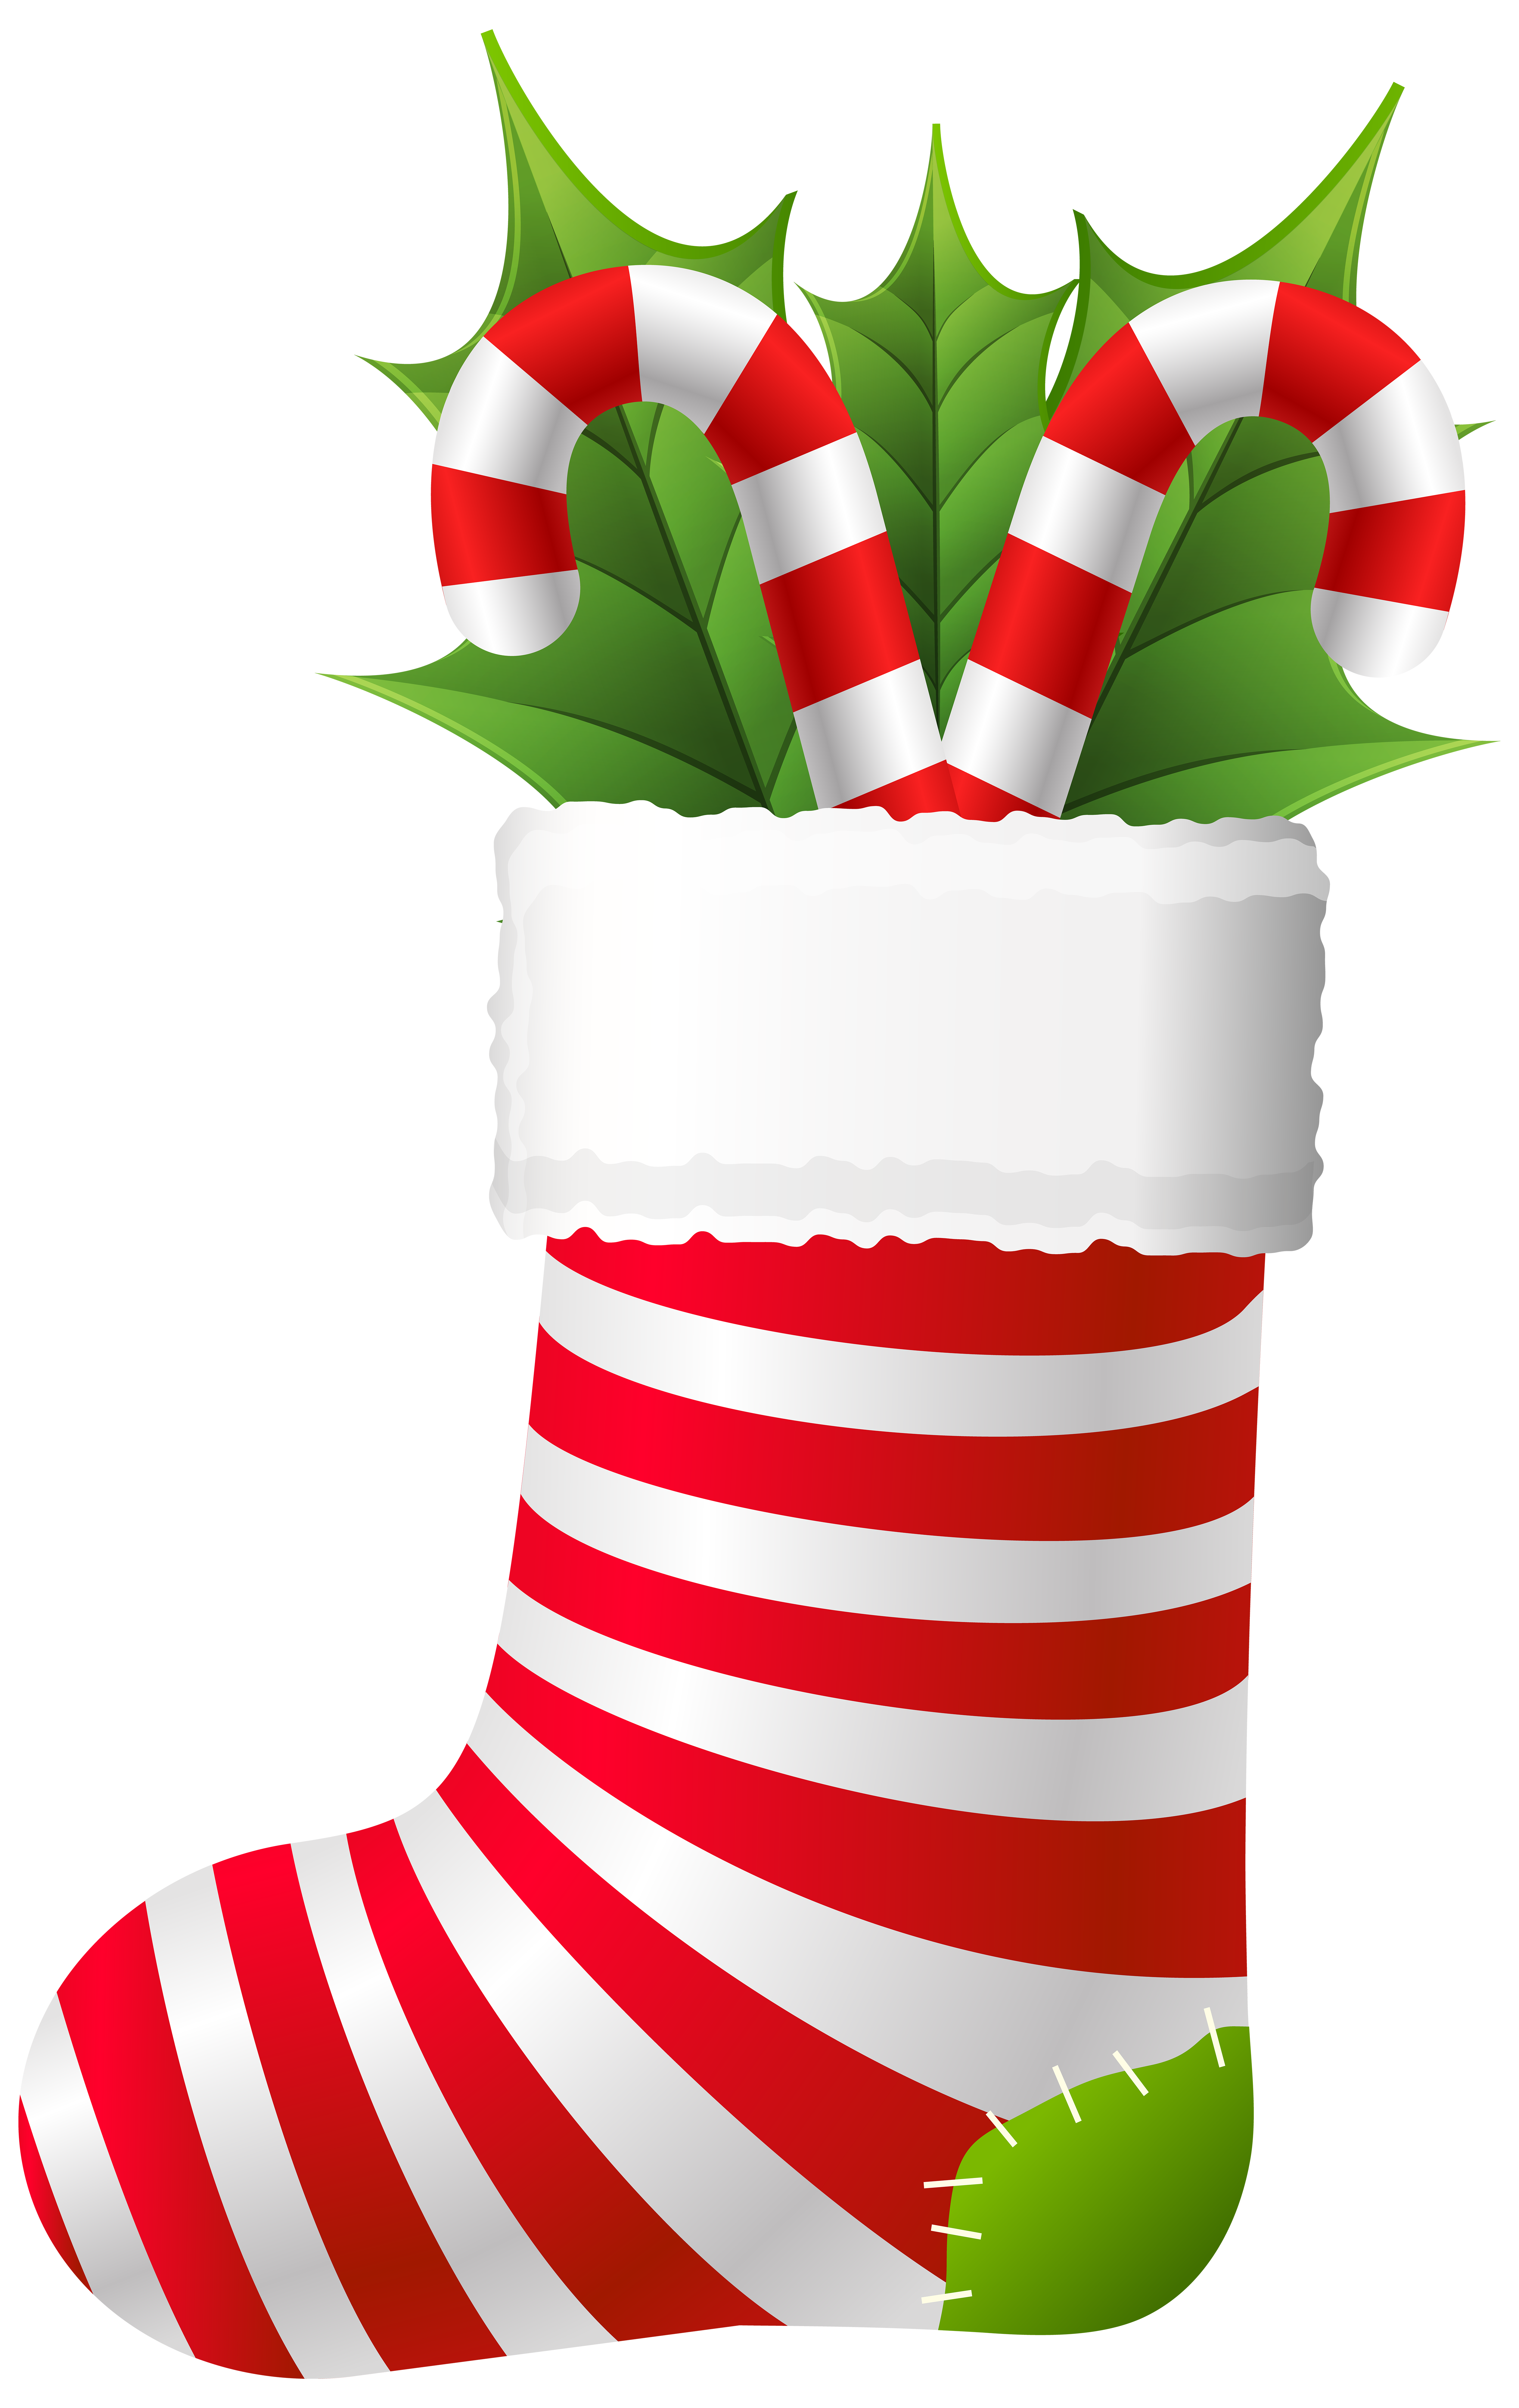 Christmas stocking clipart svg royalty free download Christmas Stocking with Candy Canes PNG Clip Art | Gallery ... svg royalty free download